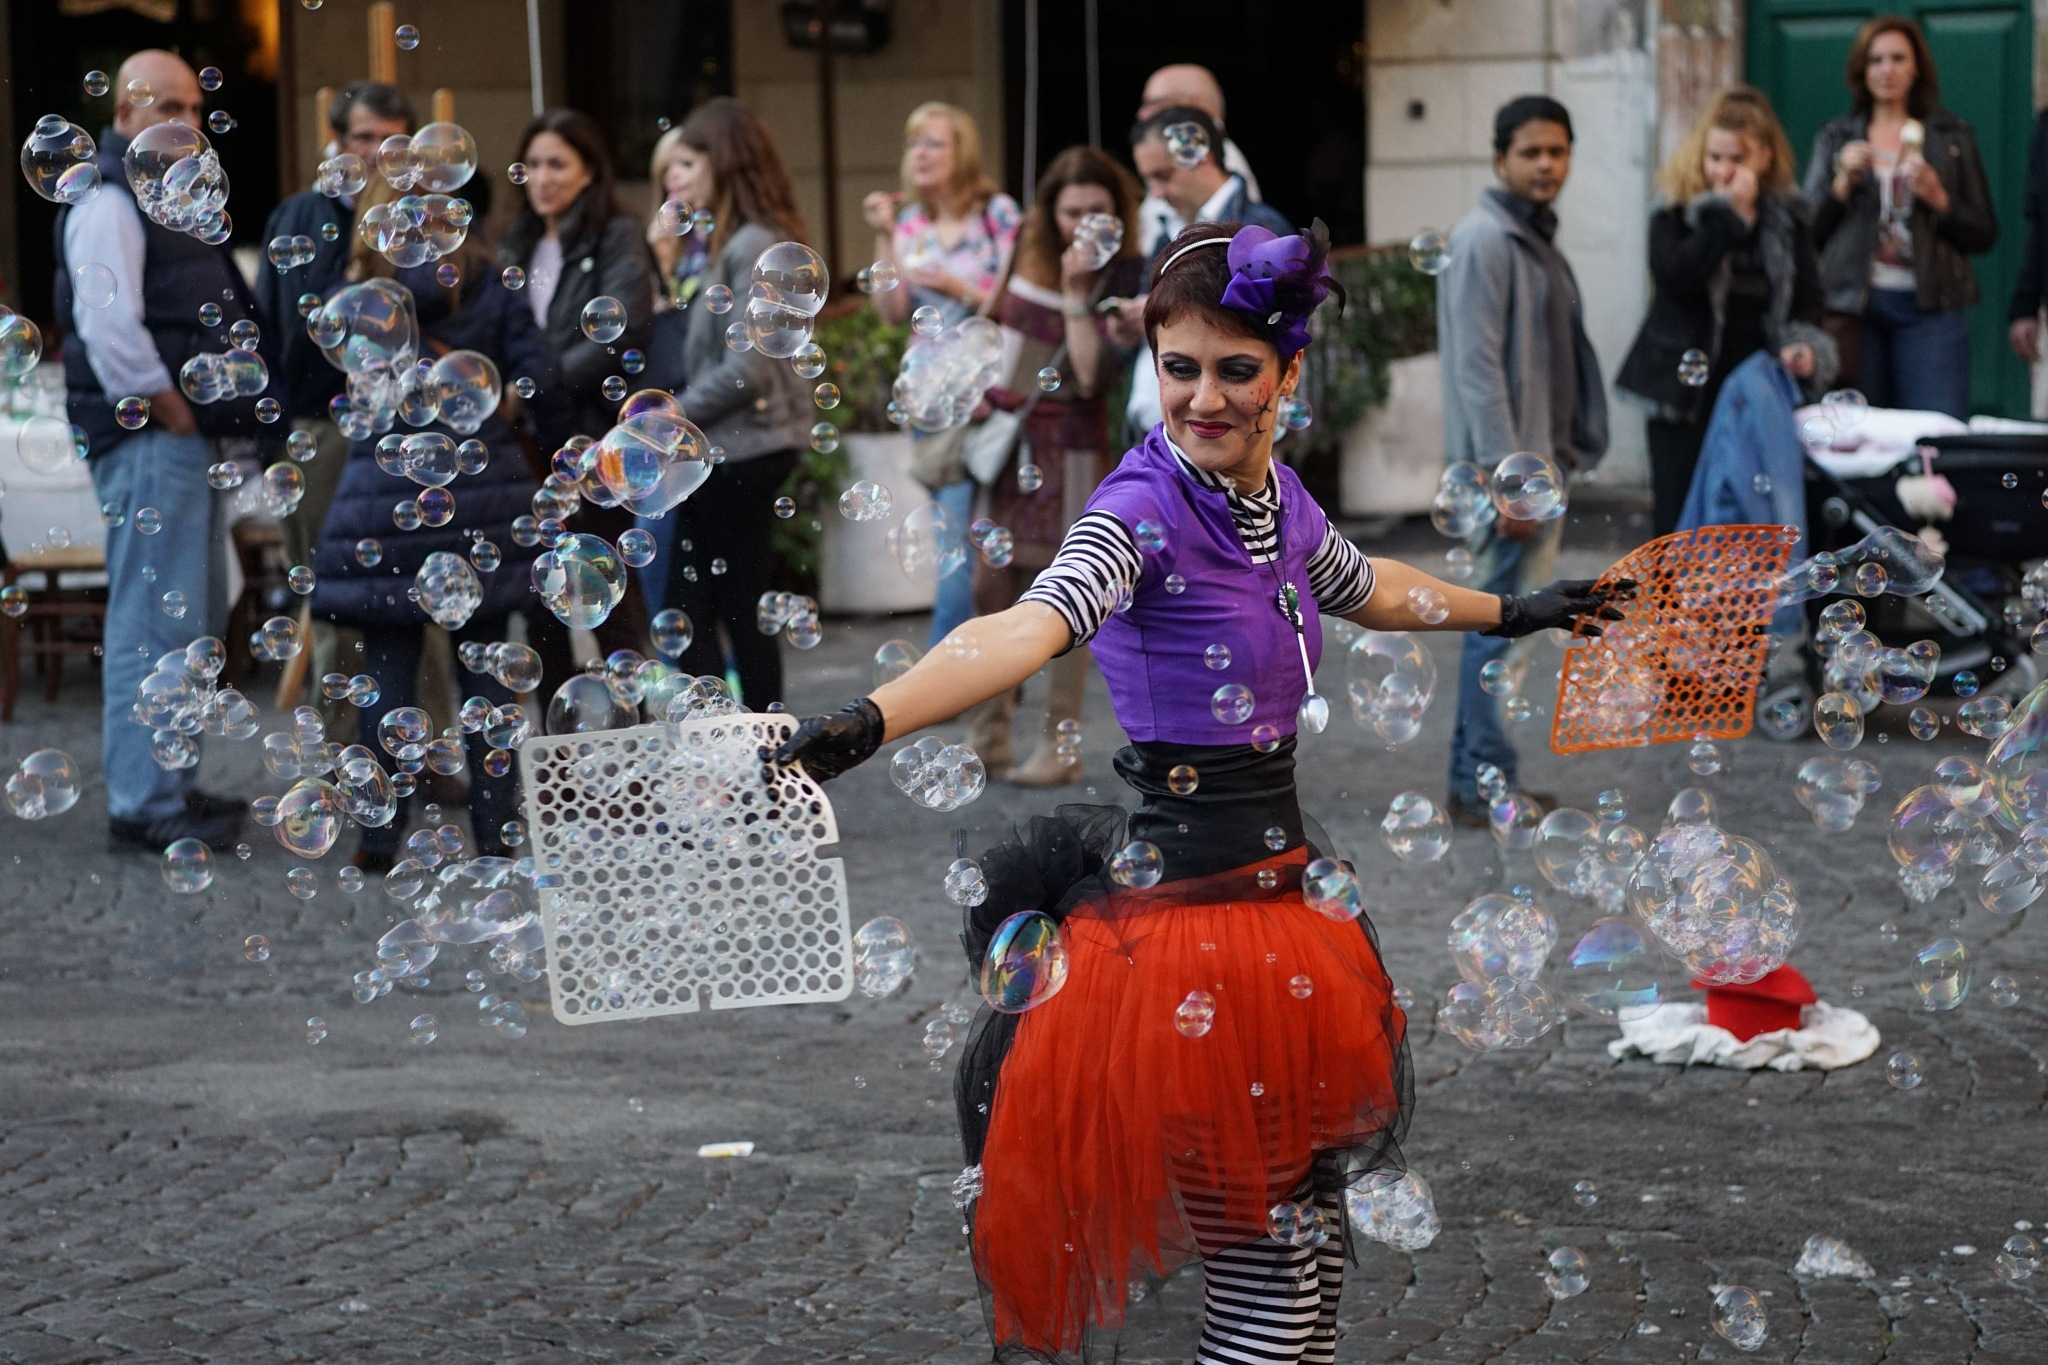 Bubbles in Roma by John Semple